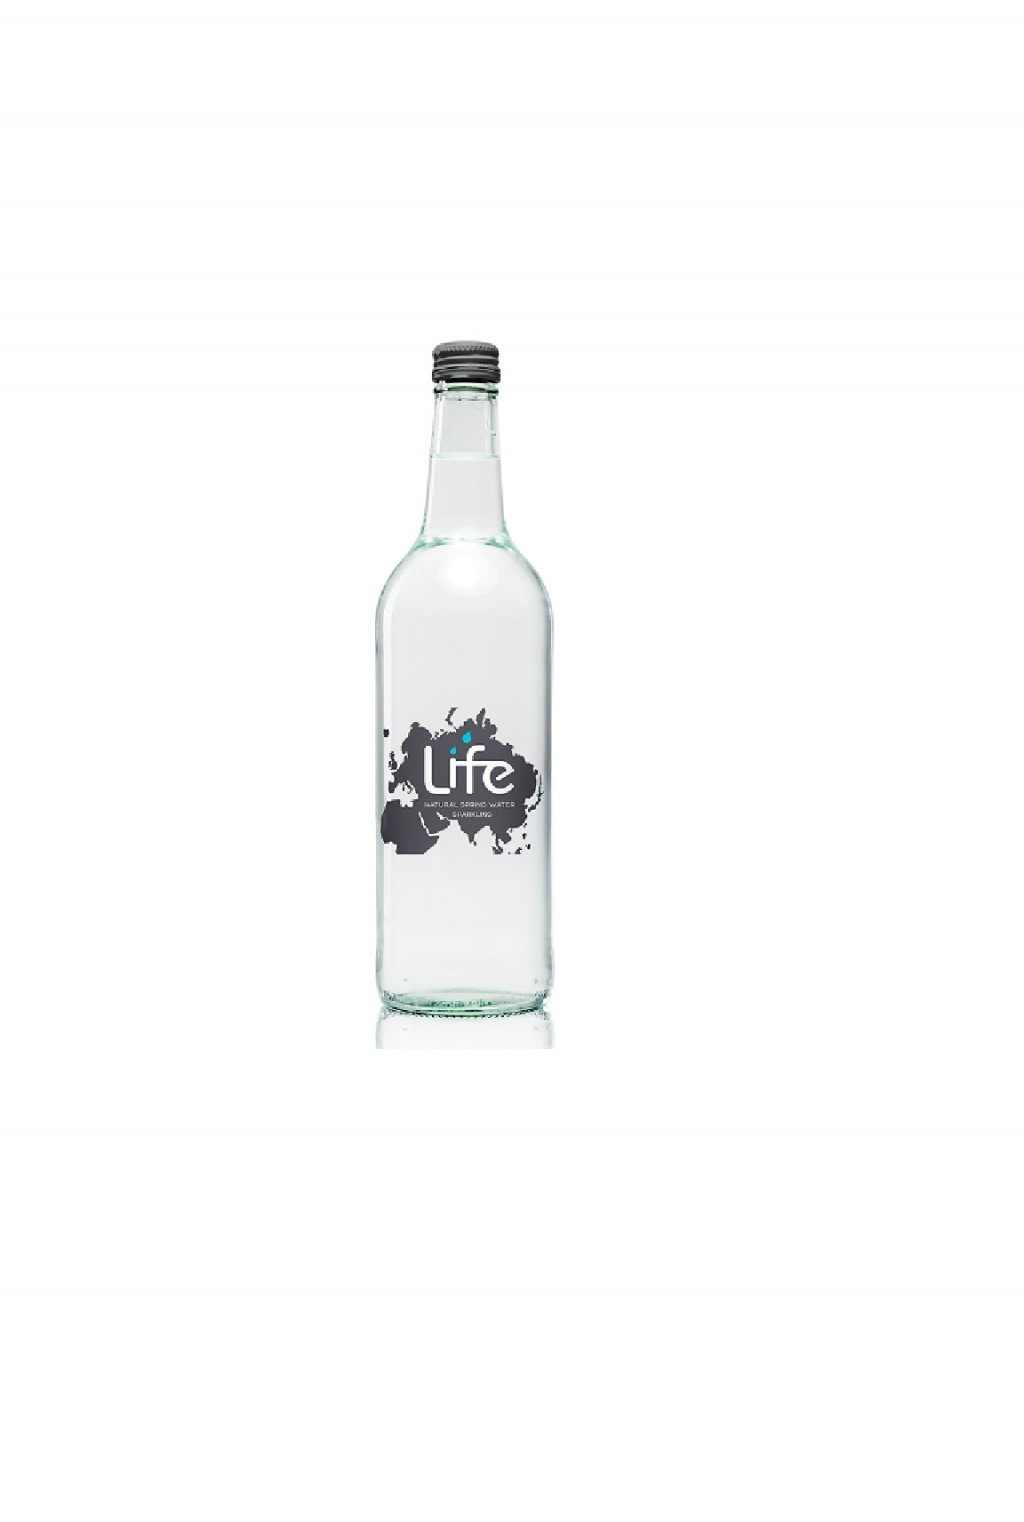 LIFE Sparkling Water (750ml) Glass